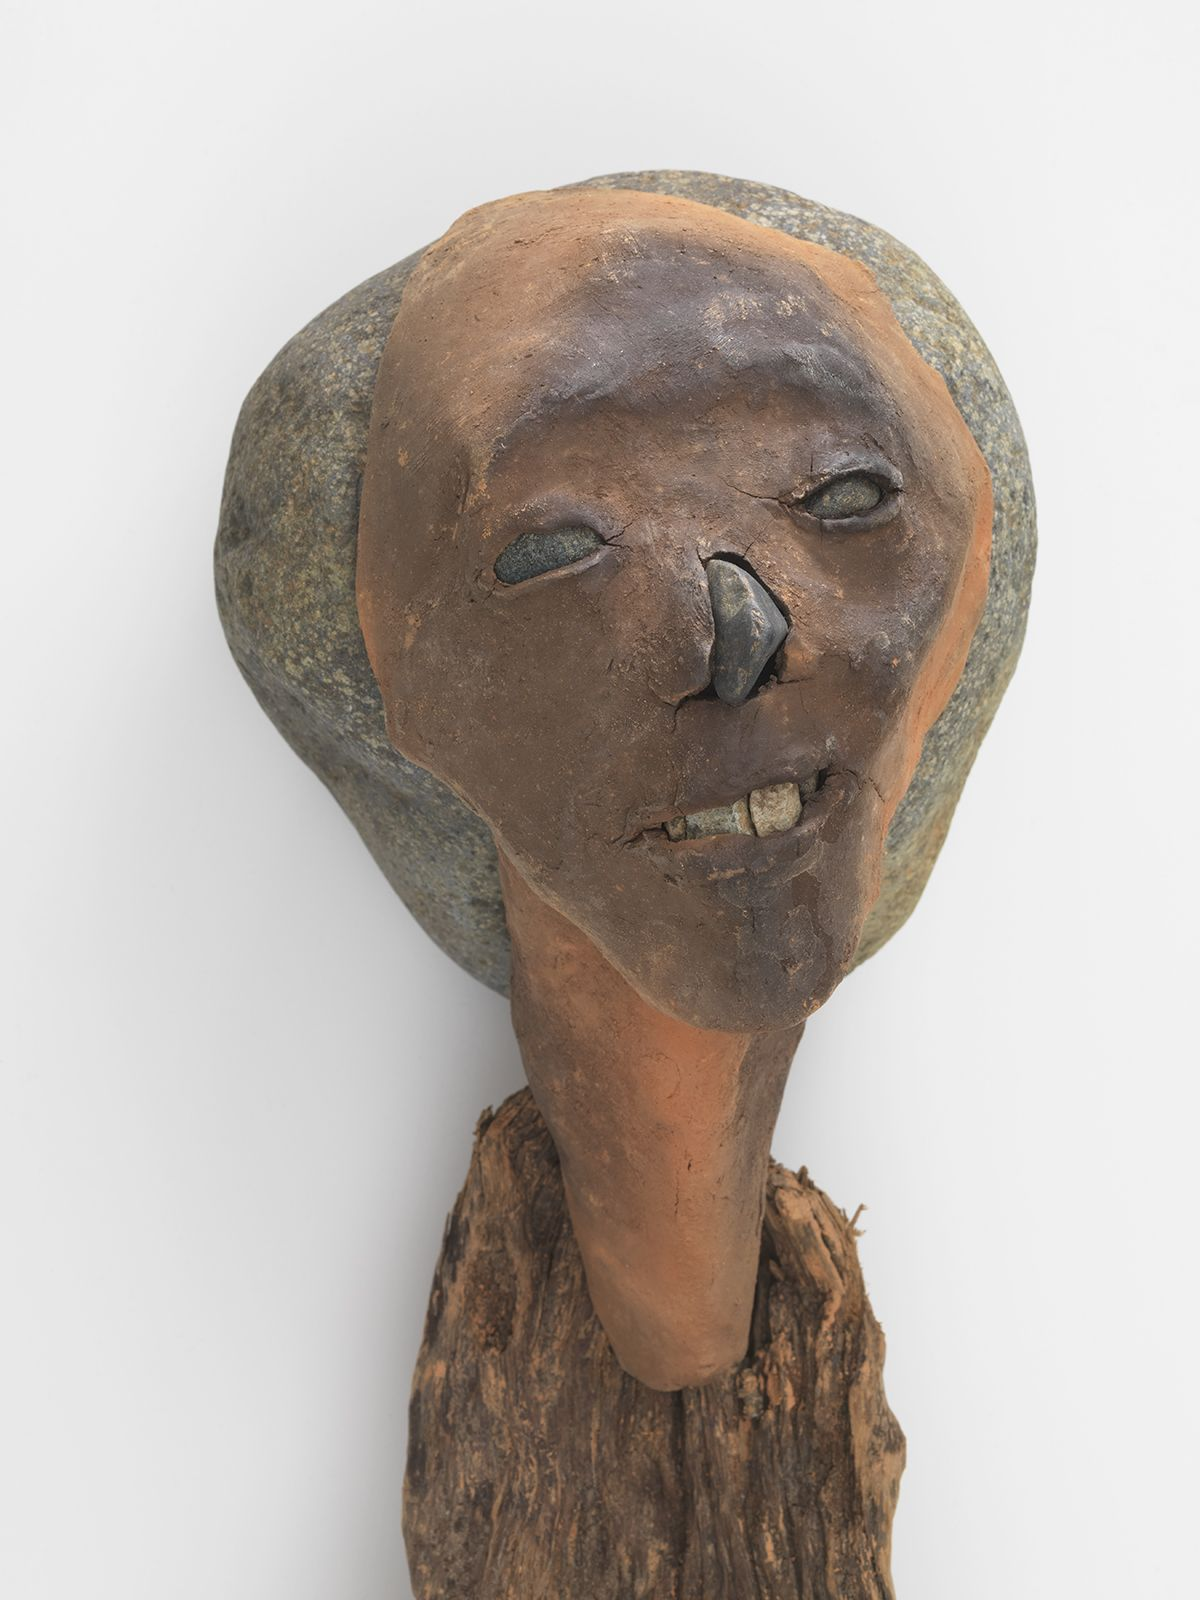 ceramic person with arms and legs made of wood